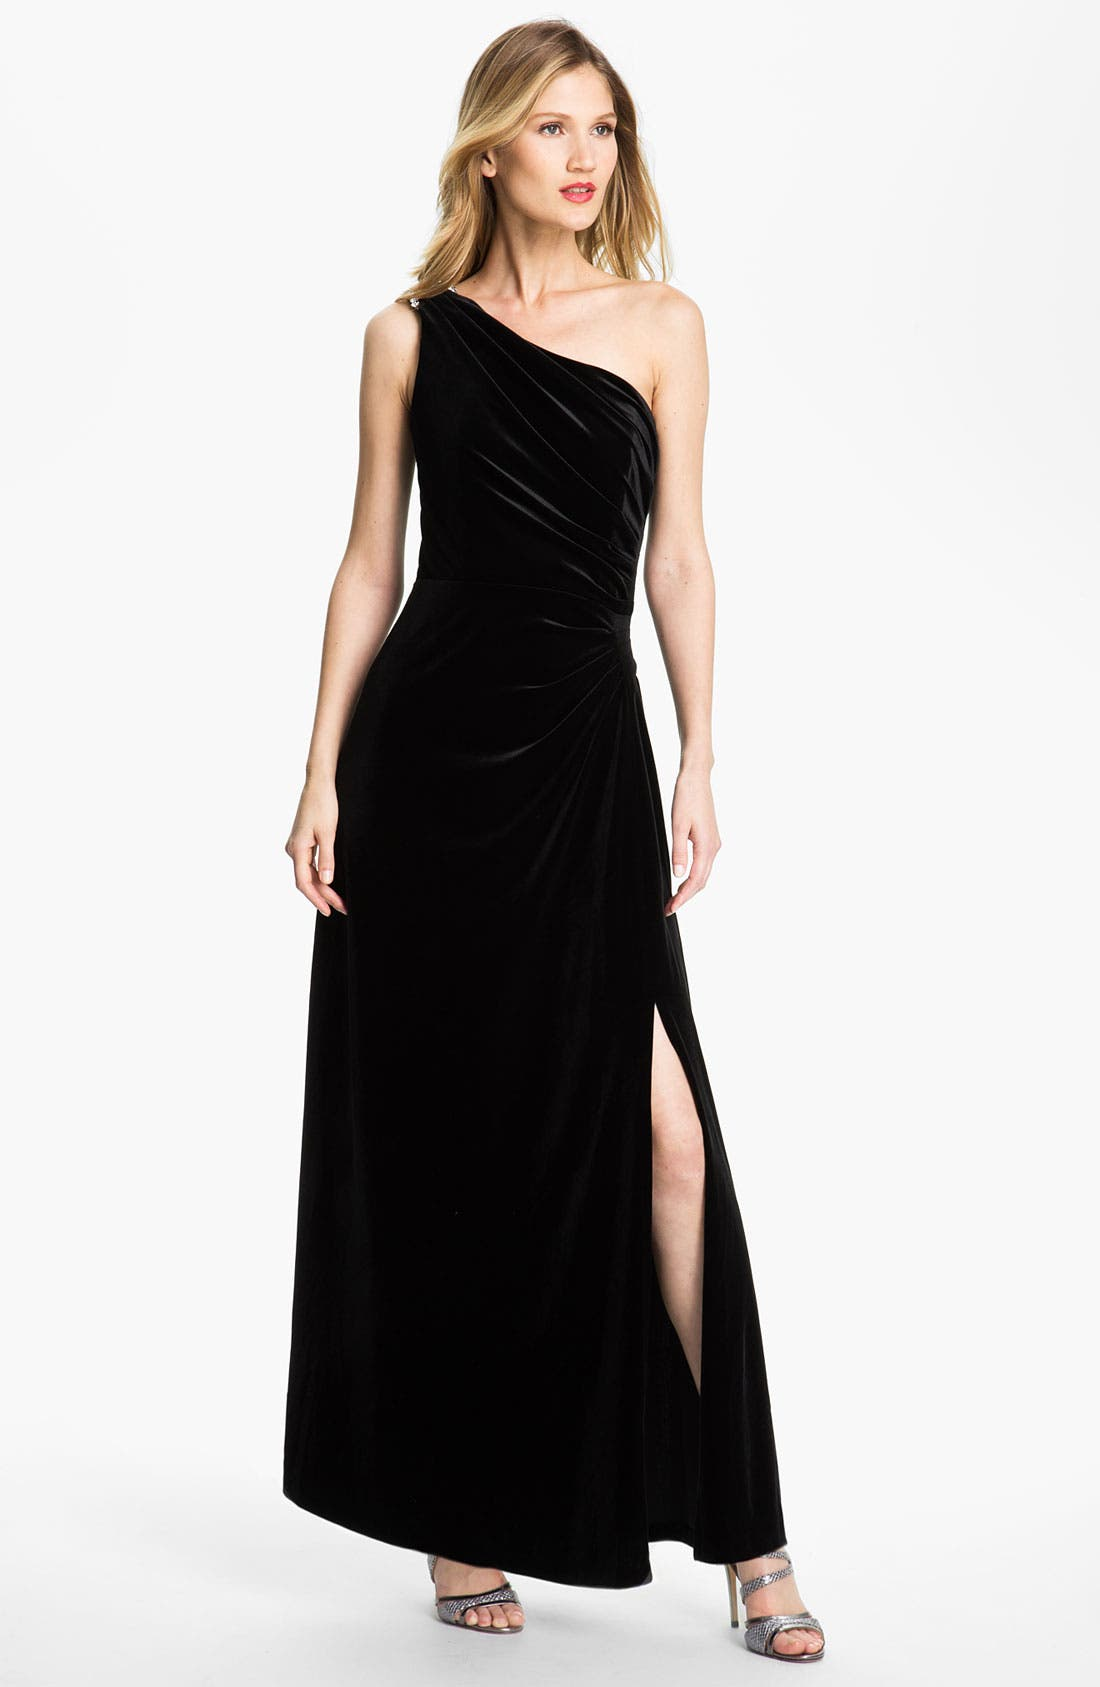 Alternate Image 1 Selected - Alex Evenings One Shoulder Velvet Gown (Petite)